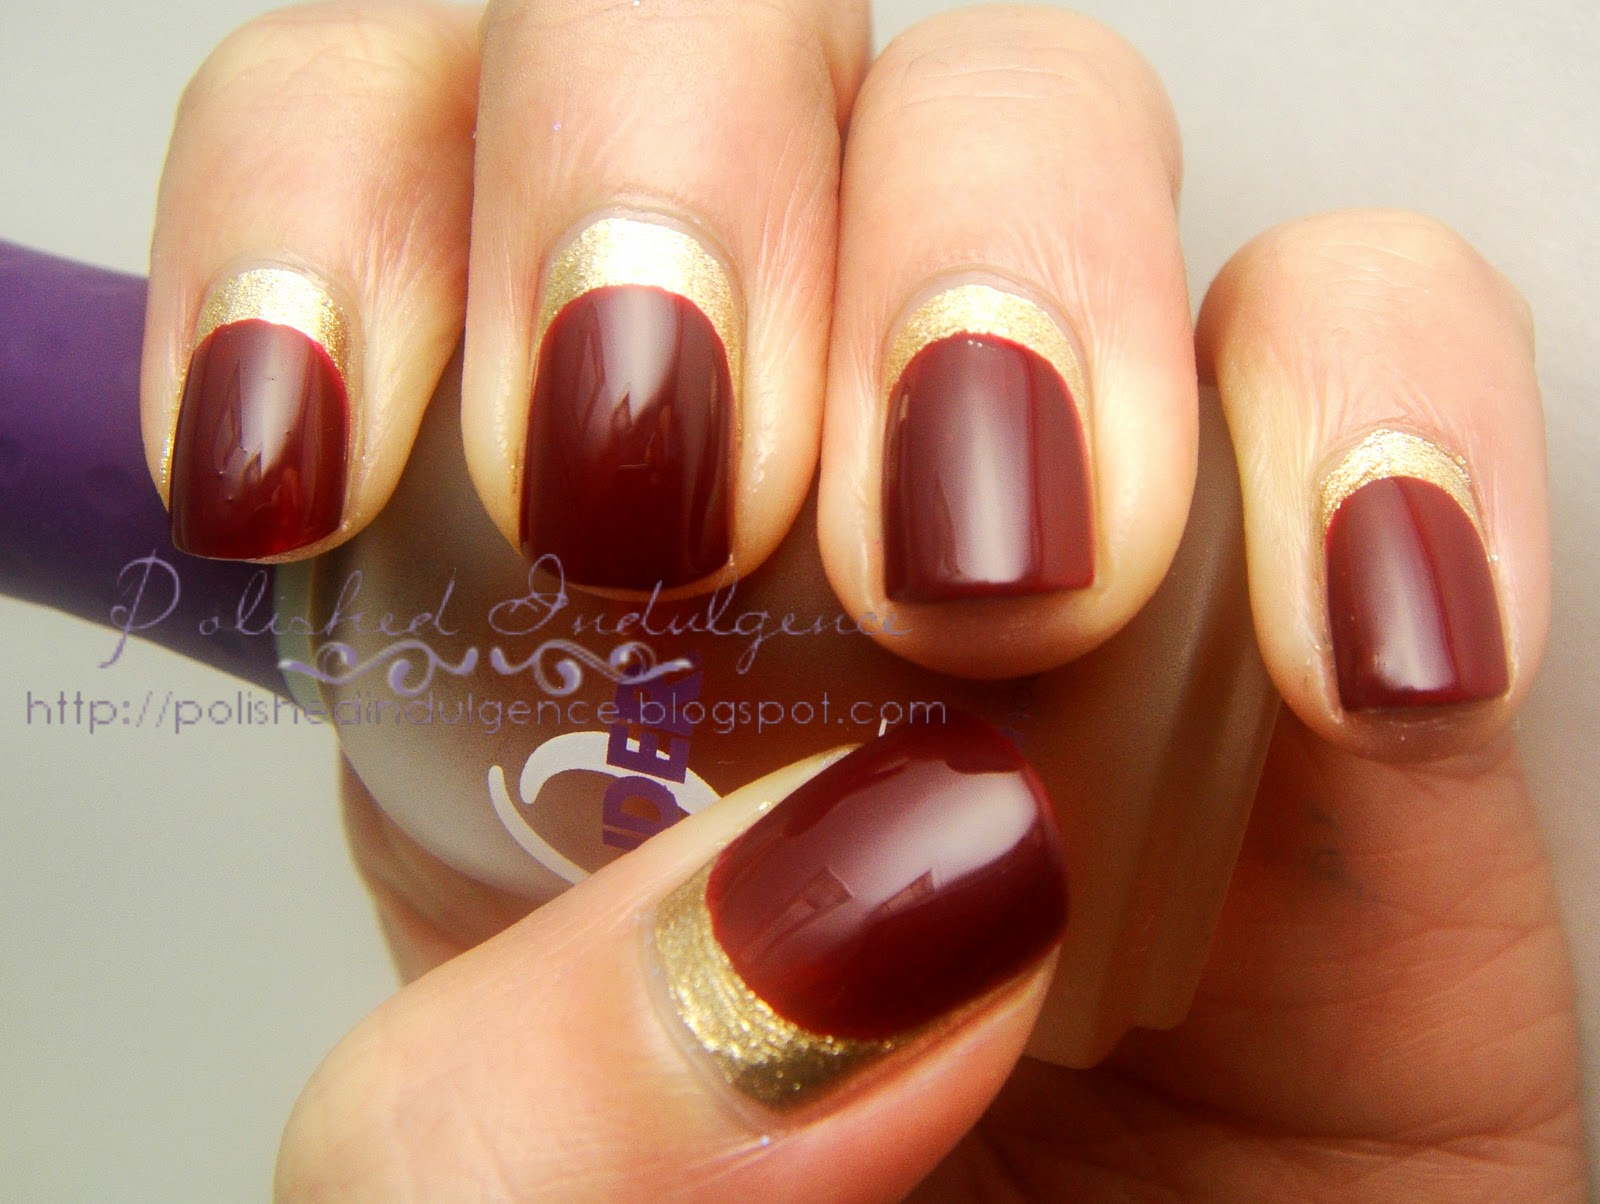 Polished indulgence nail art wednesday red and gold ruffian nails nail art wednesday red and gold ruffian nails prinsesfo Images